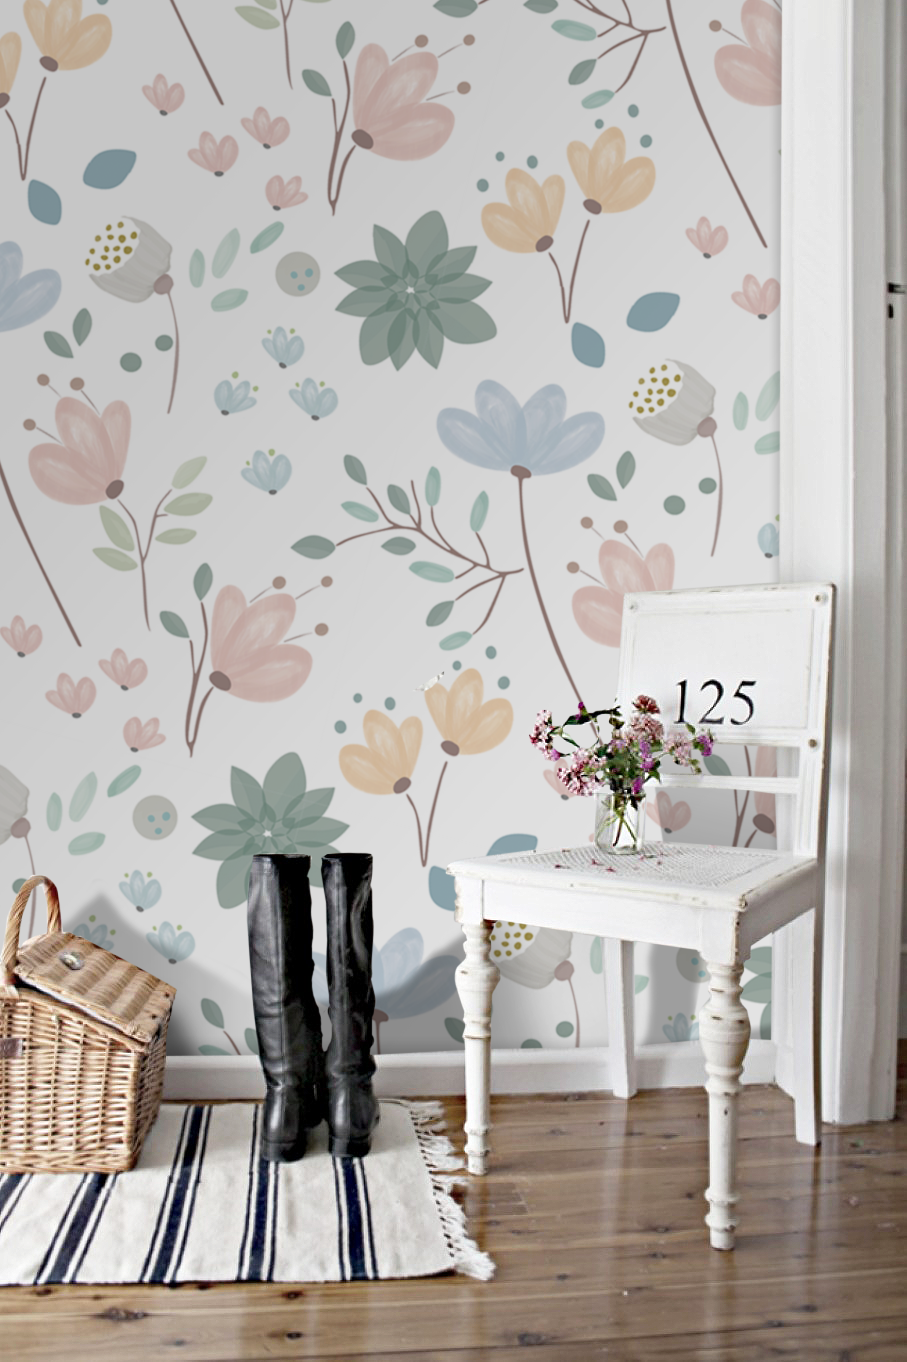 Pin On Floral Murals